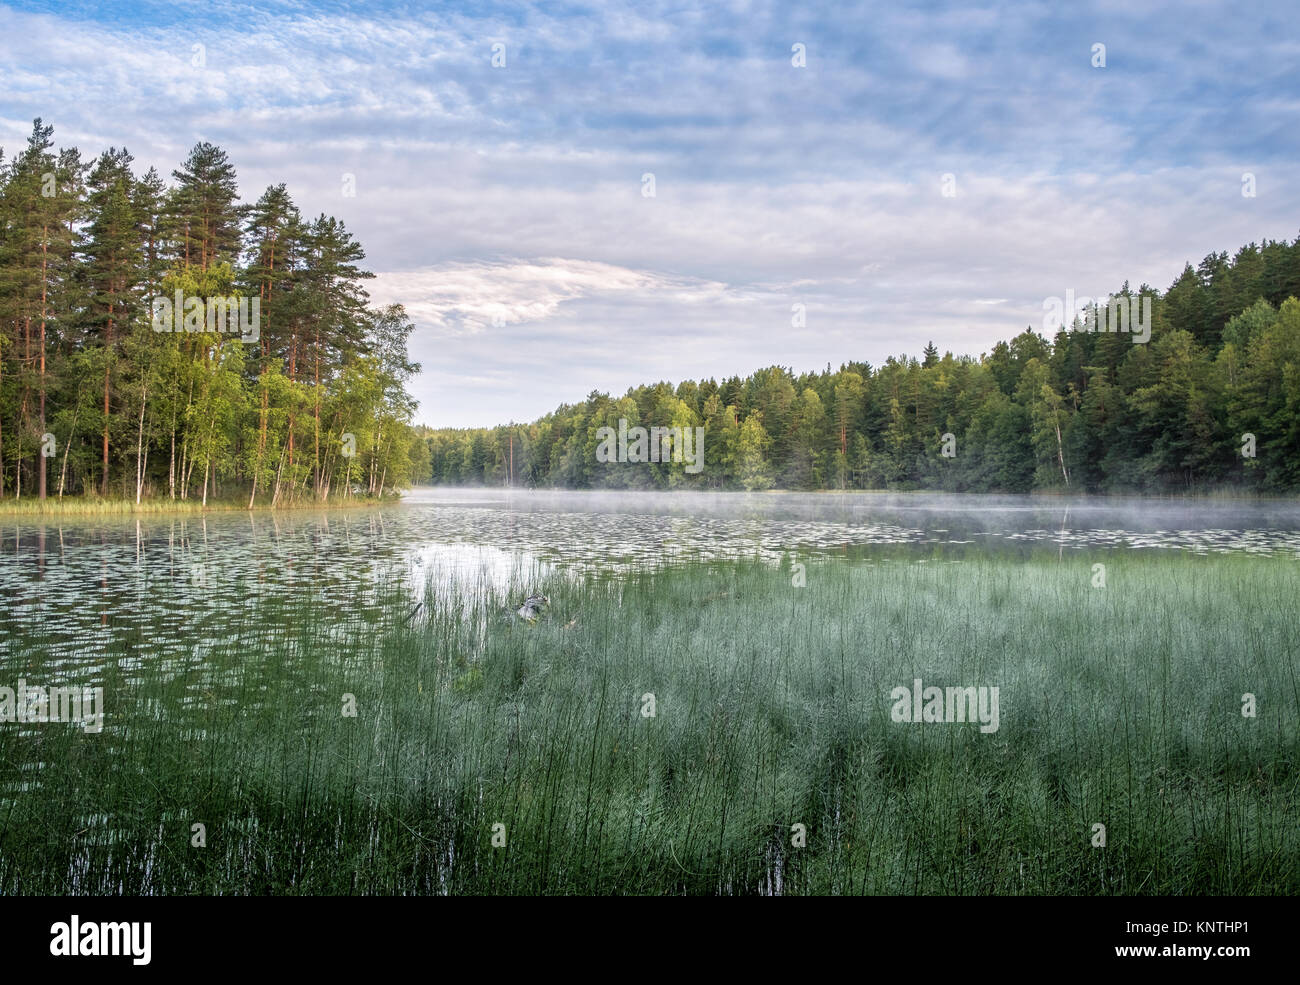 Peaceful morning mood with scenic lake view at autumn in Nuuksio National park, Finland - Stock Image